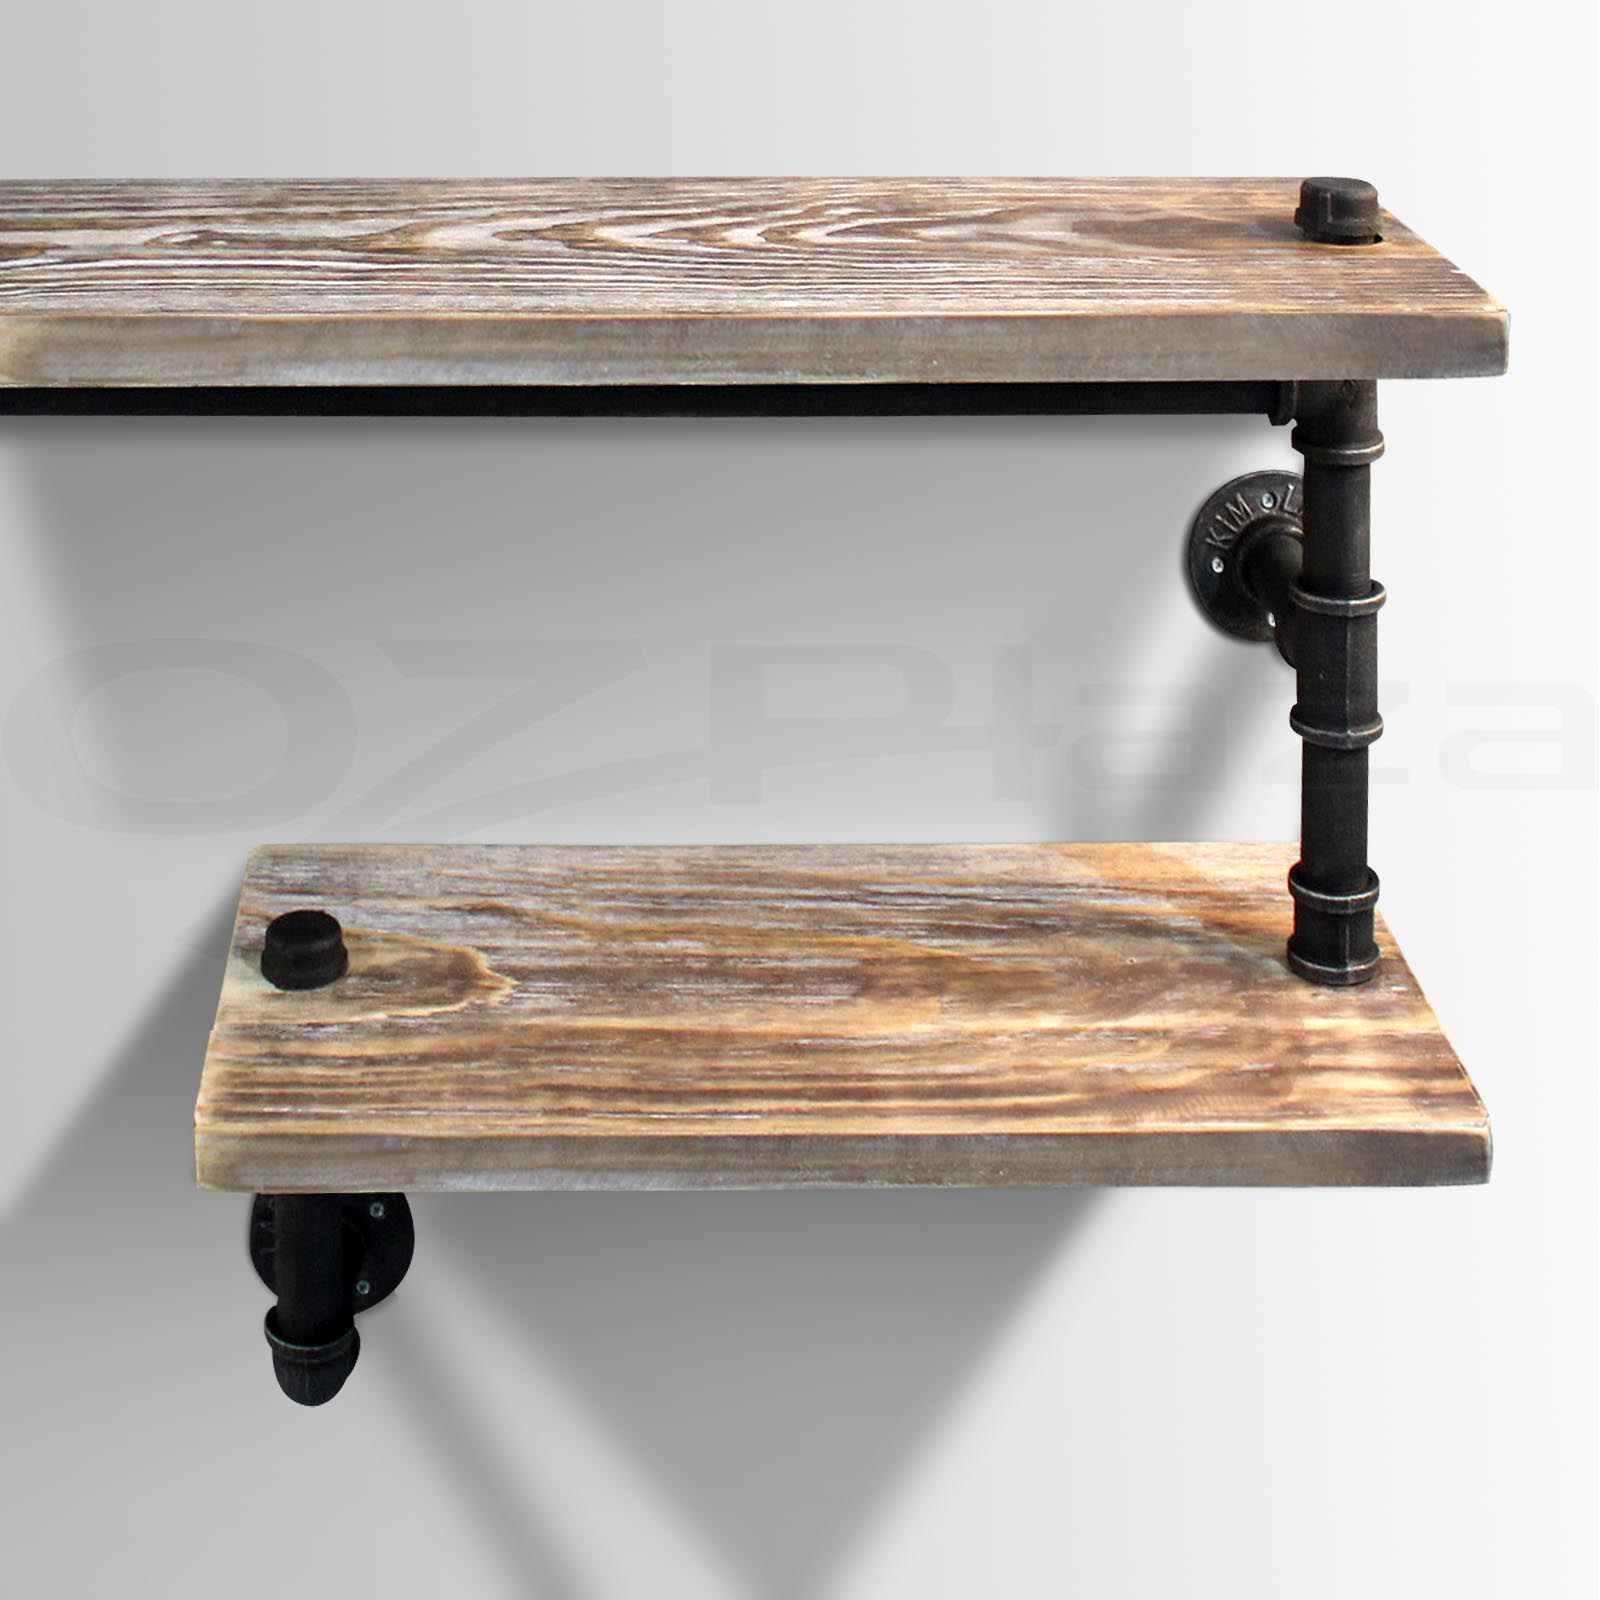 ... Level Rustic Industrial DIY Pipe Shelf Vintage Bookshelf Wall Shelving